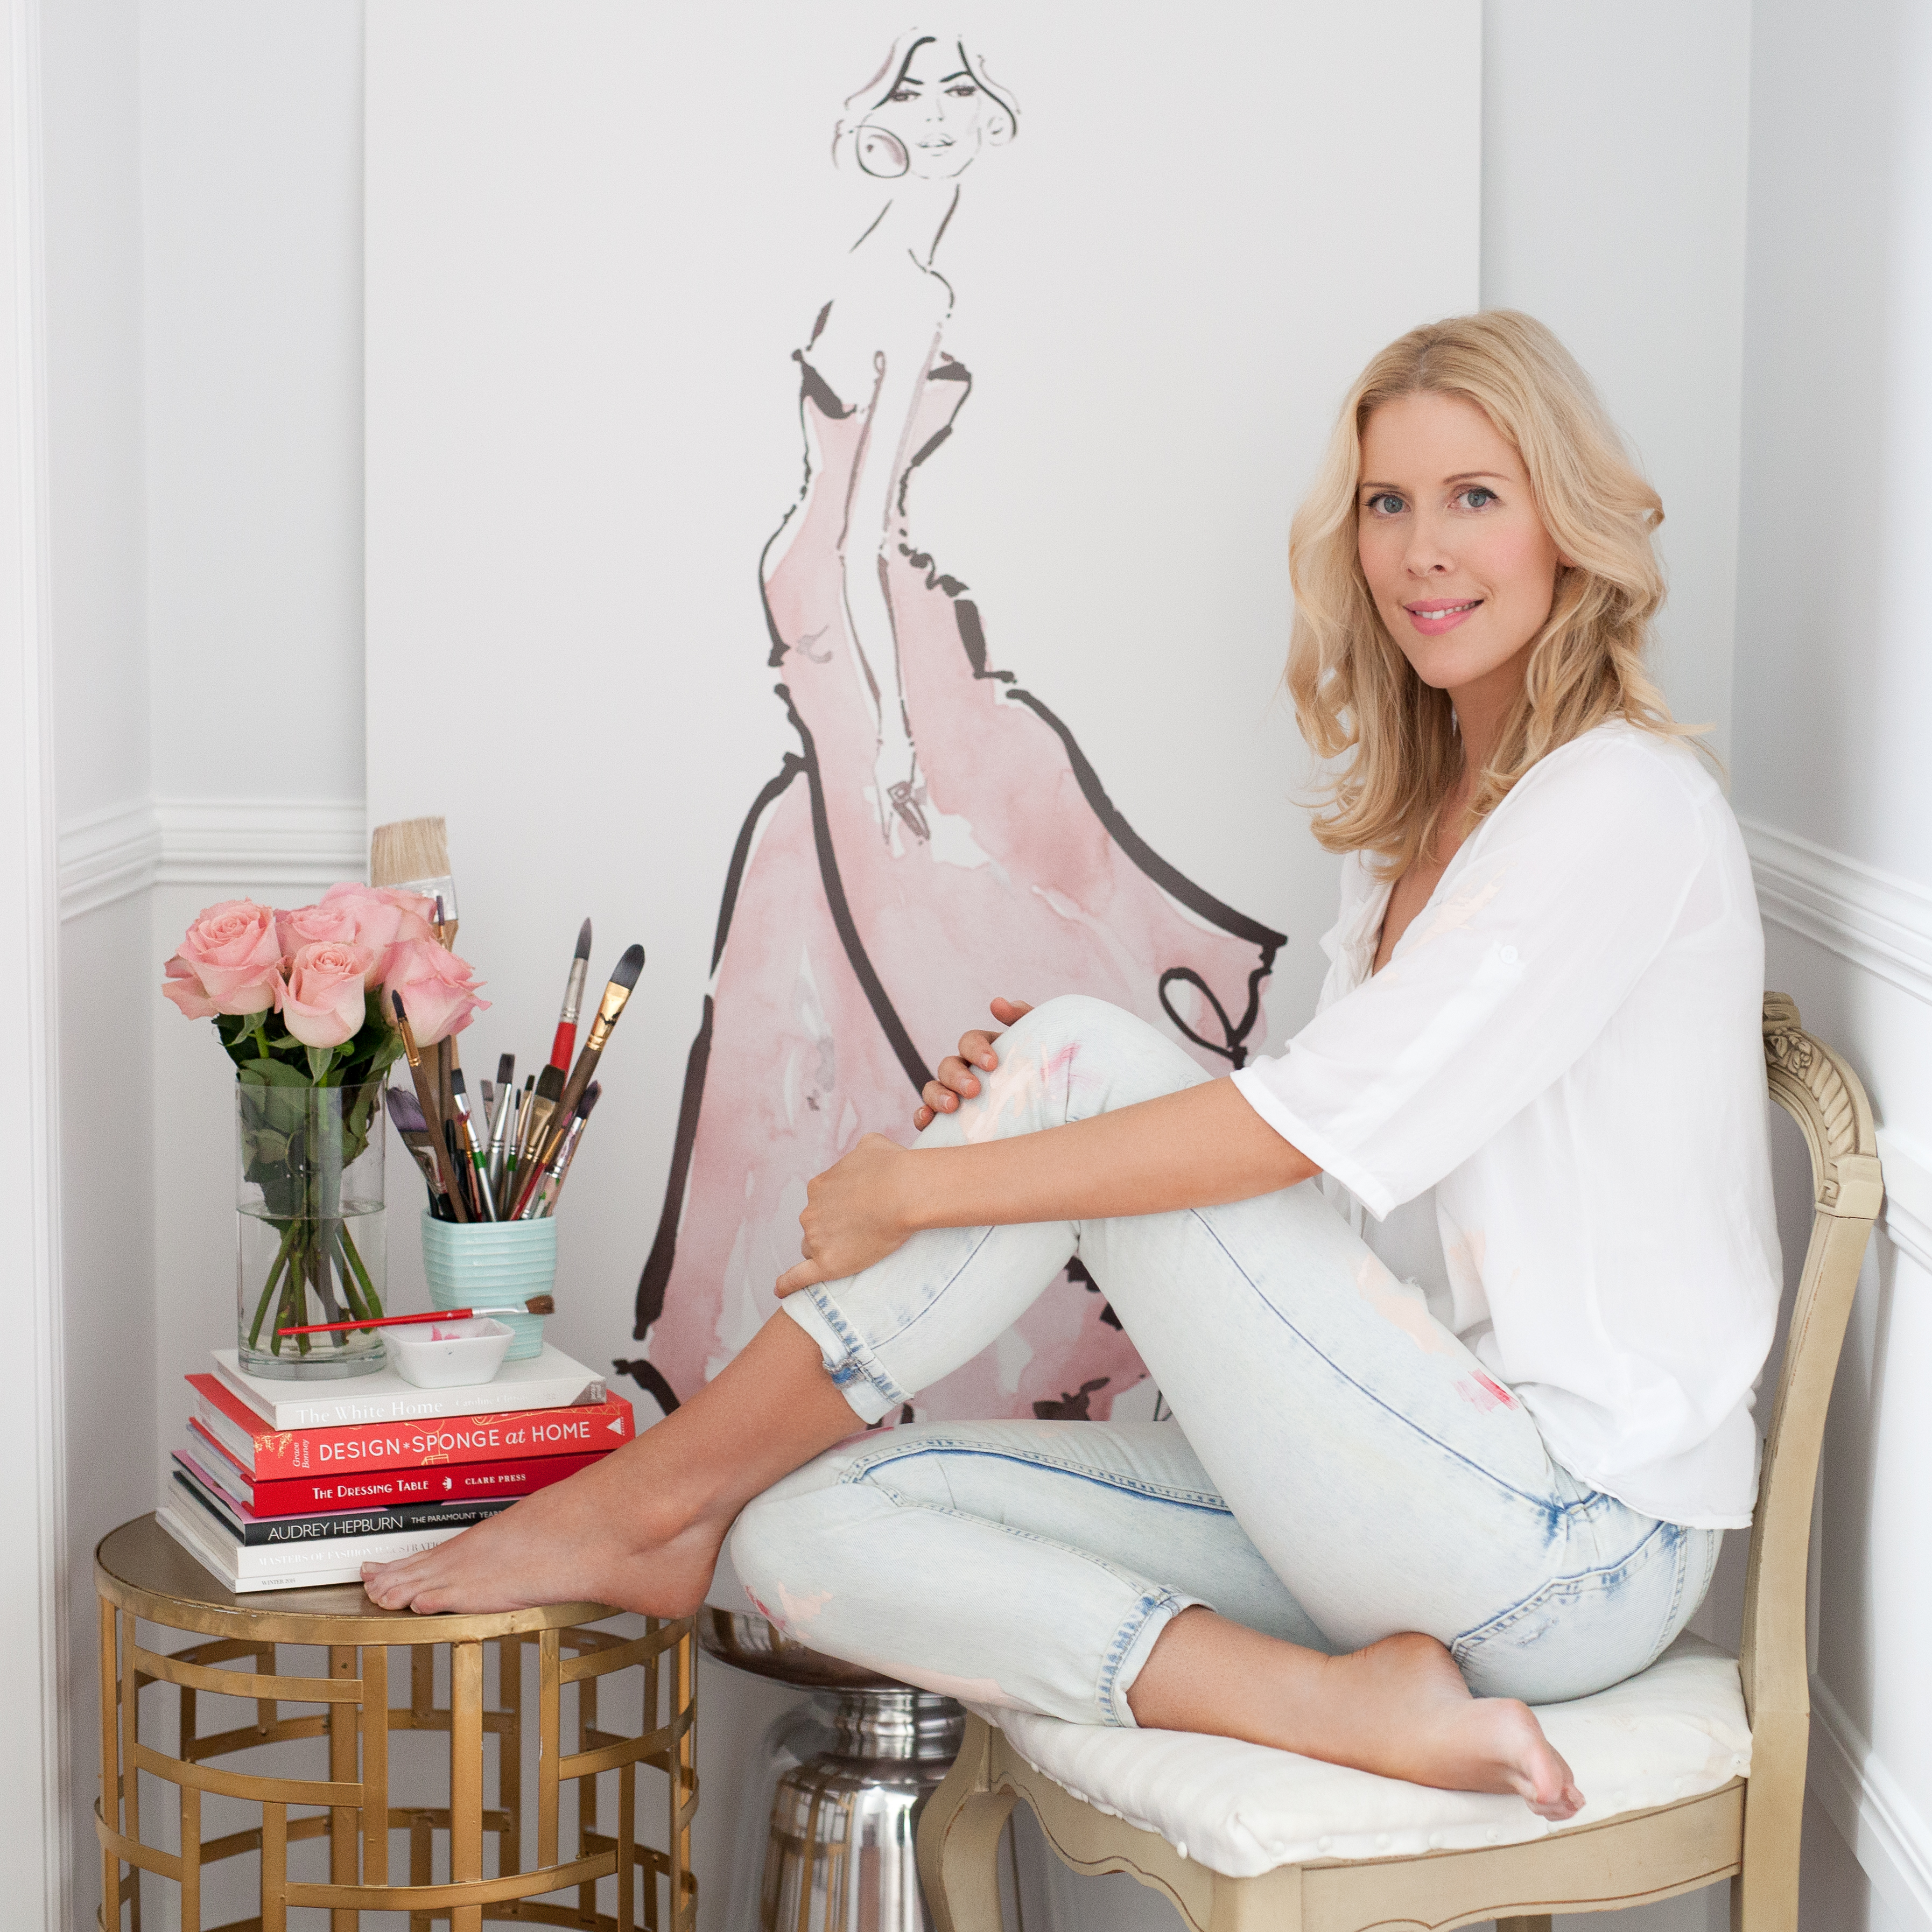 bM chats to: FASHION ILLUSTRATOR, KERRIE HESS